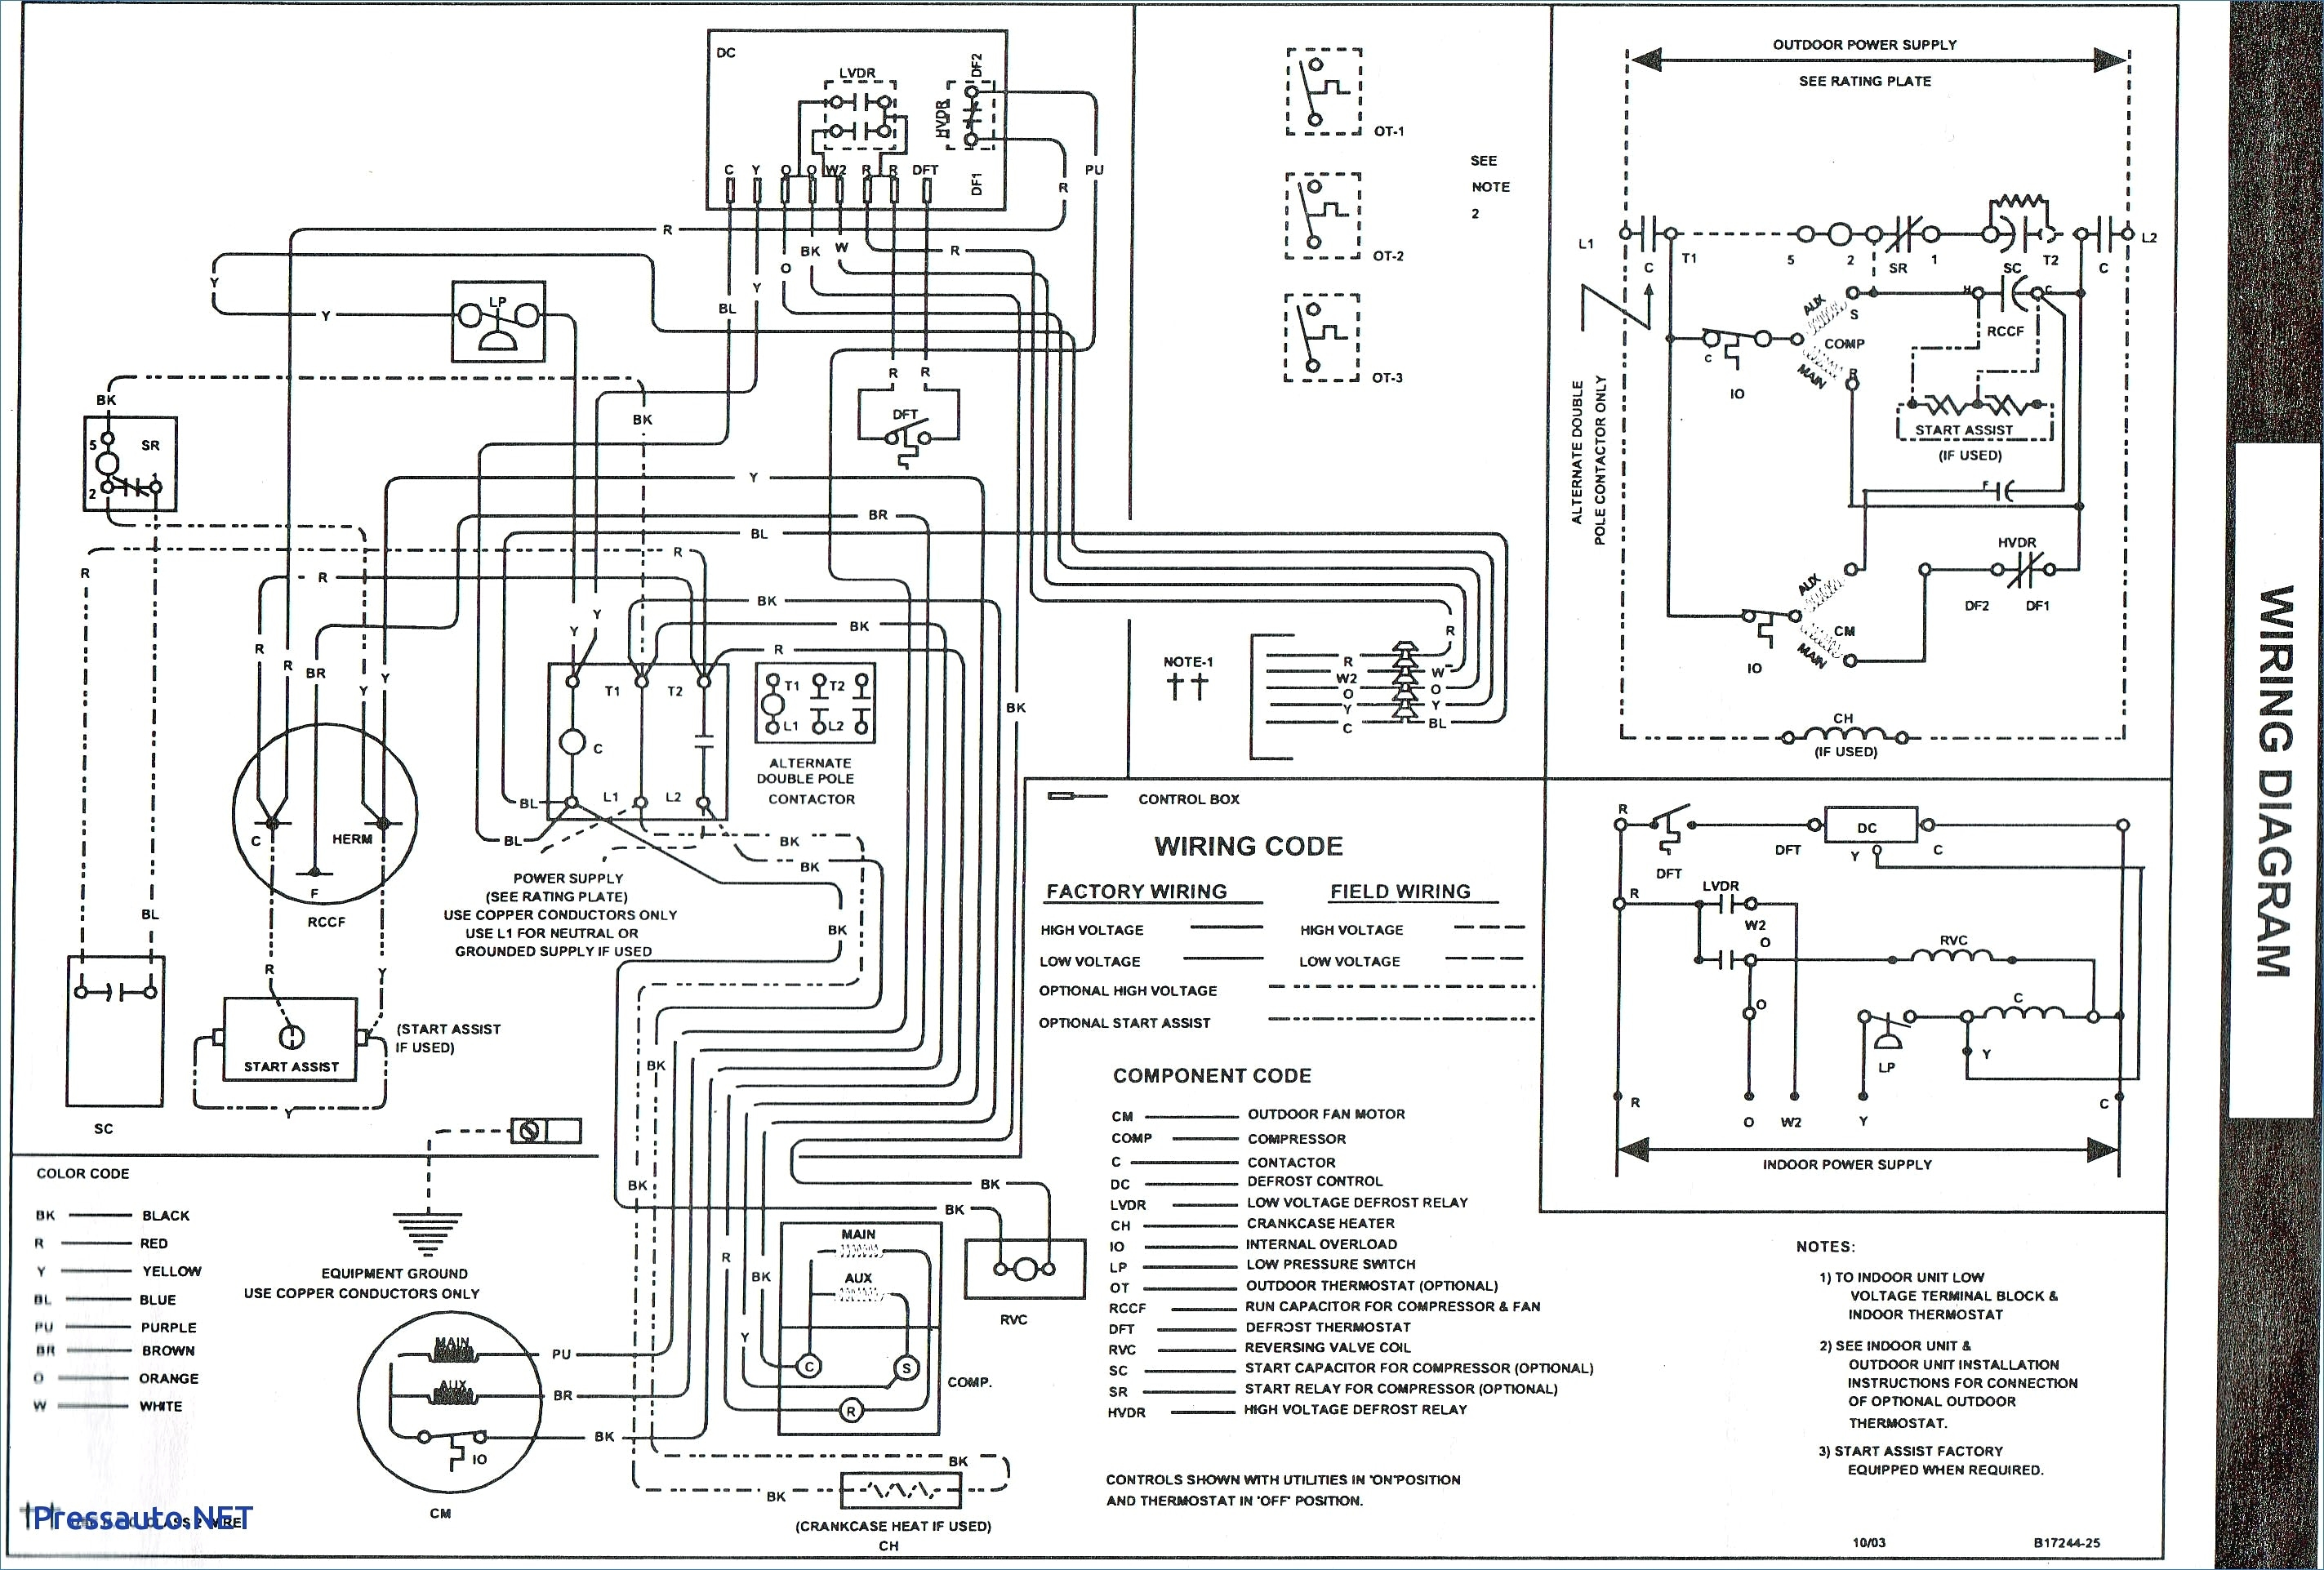 goodman heat pump defrost control board wiring diagram goodman defrost board wiring diagram | free wiring diagram york defrost board wiring diagram